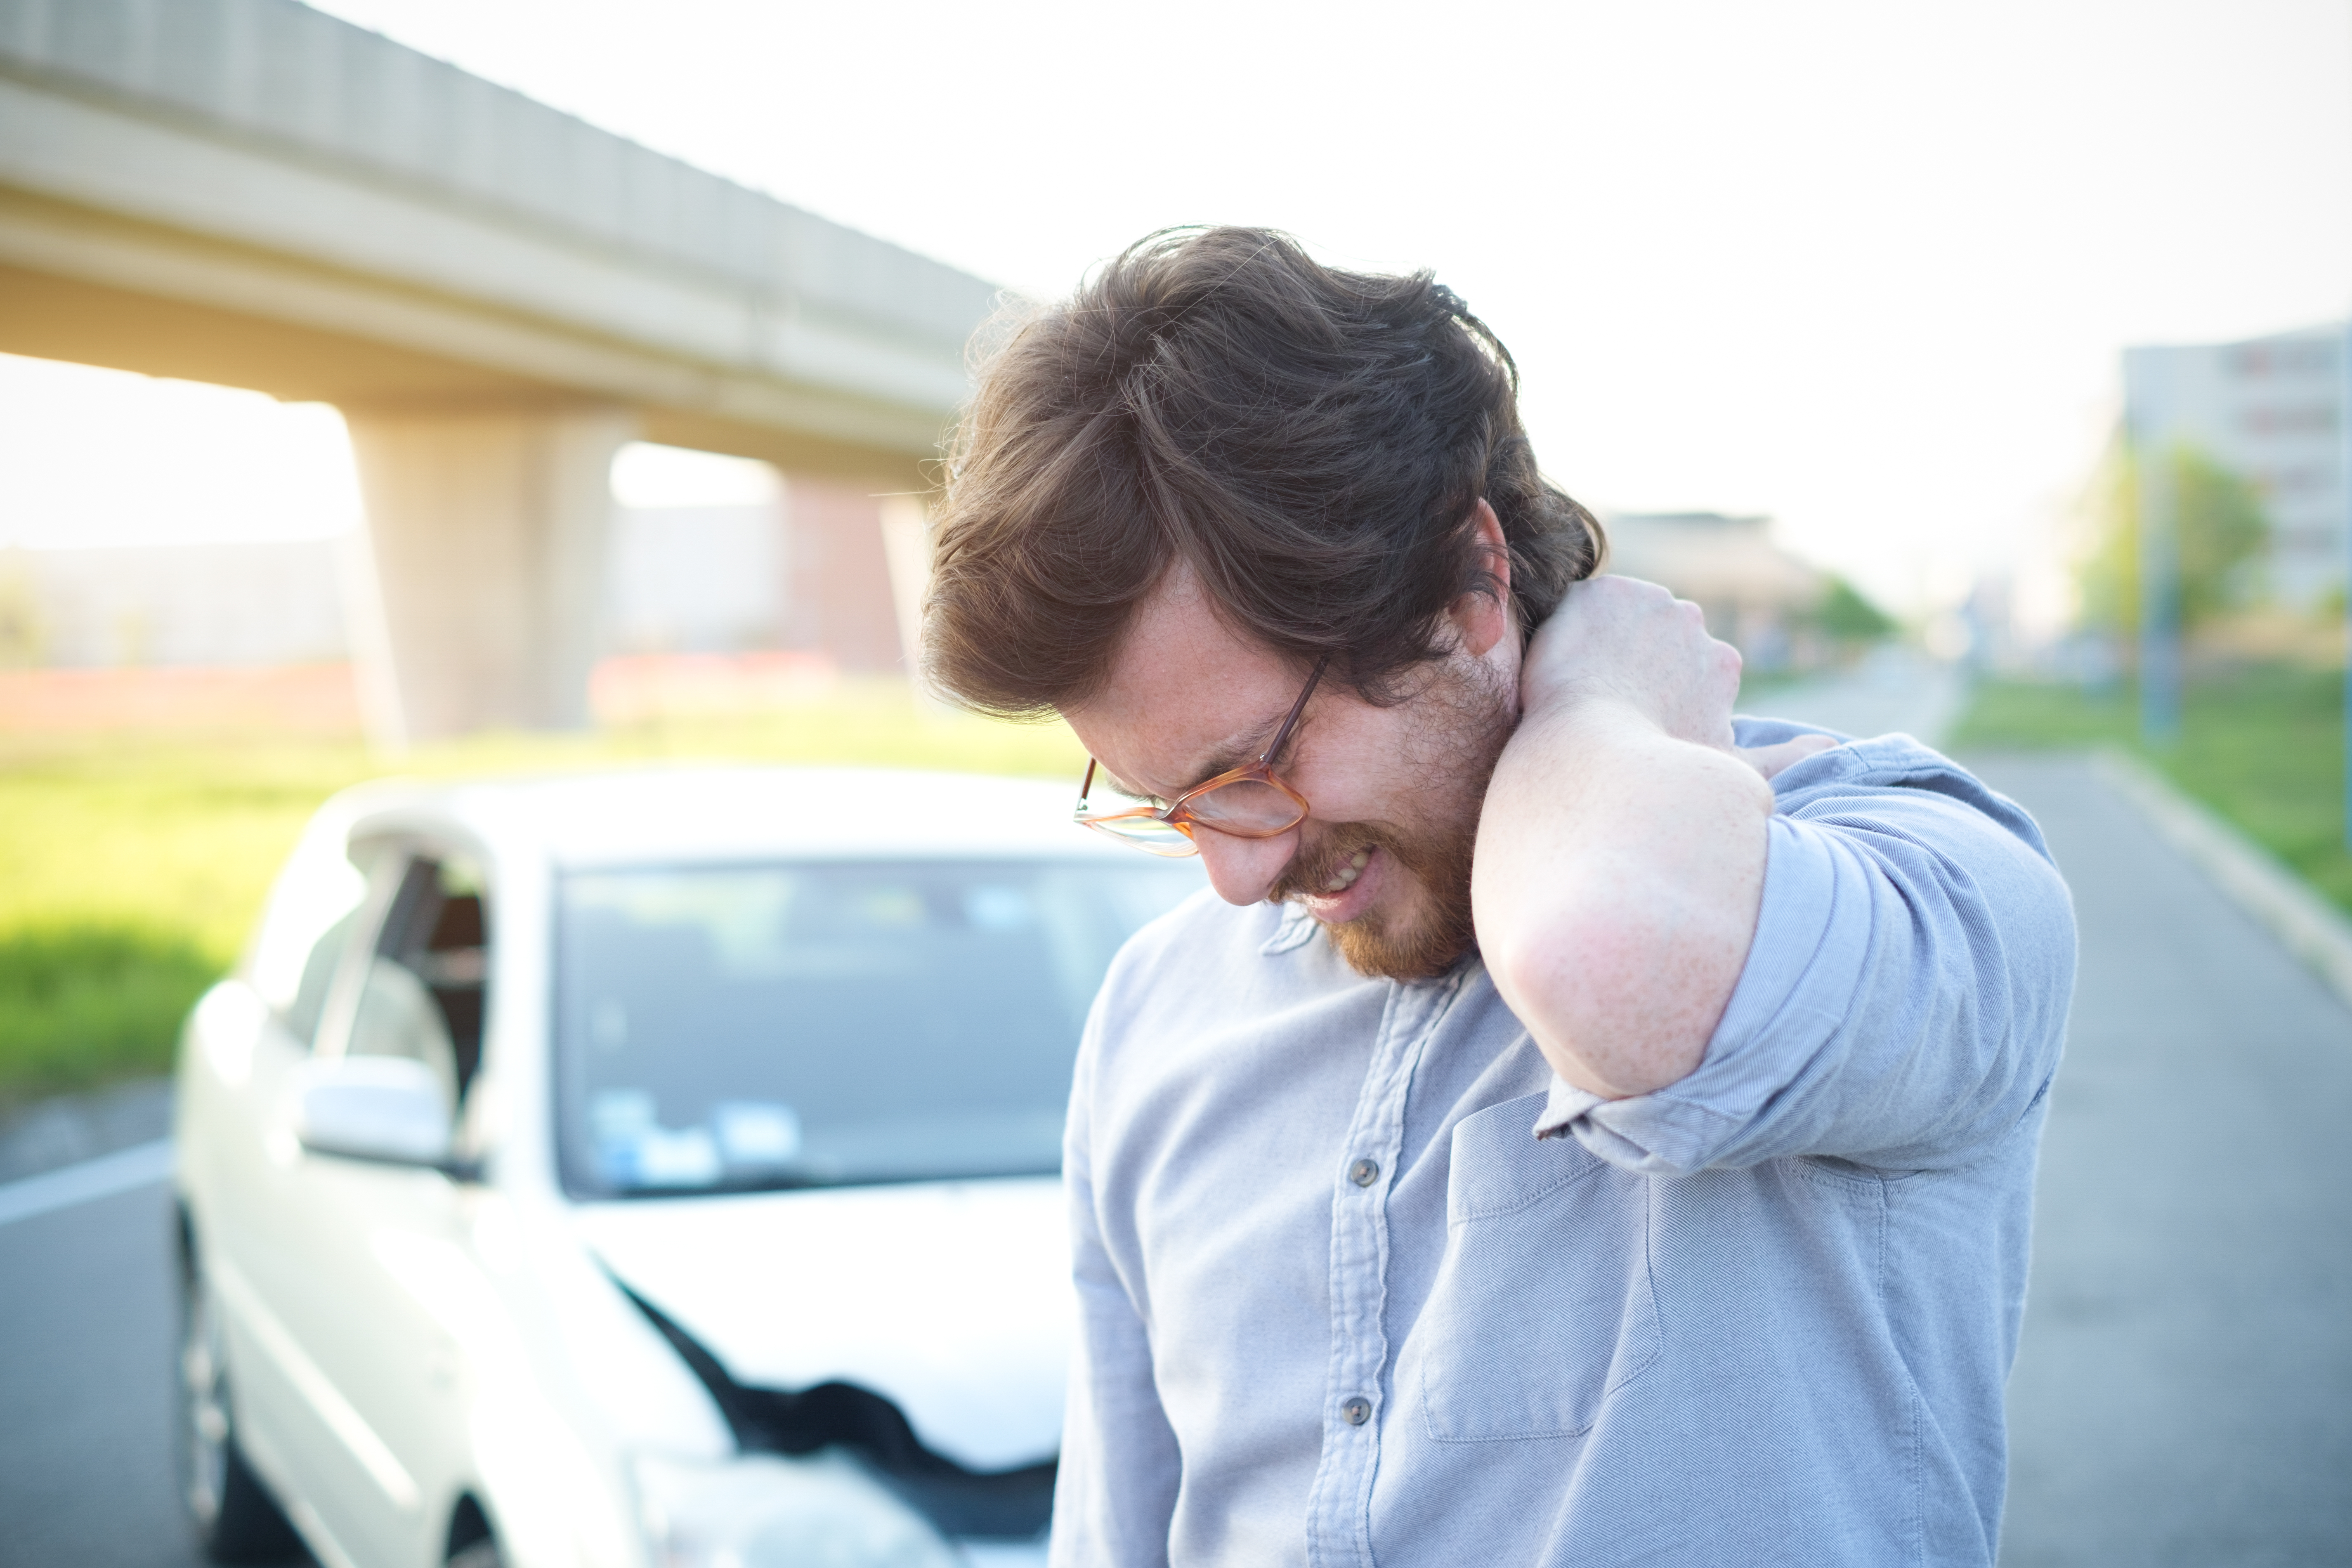 Man injured in a car accident who could be helped by Kate Frame Acupuncture